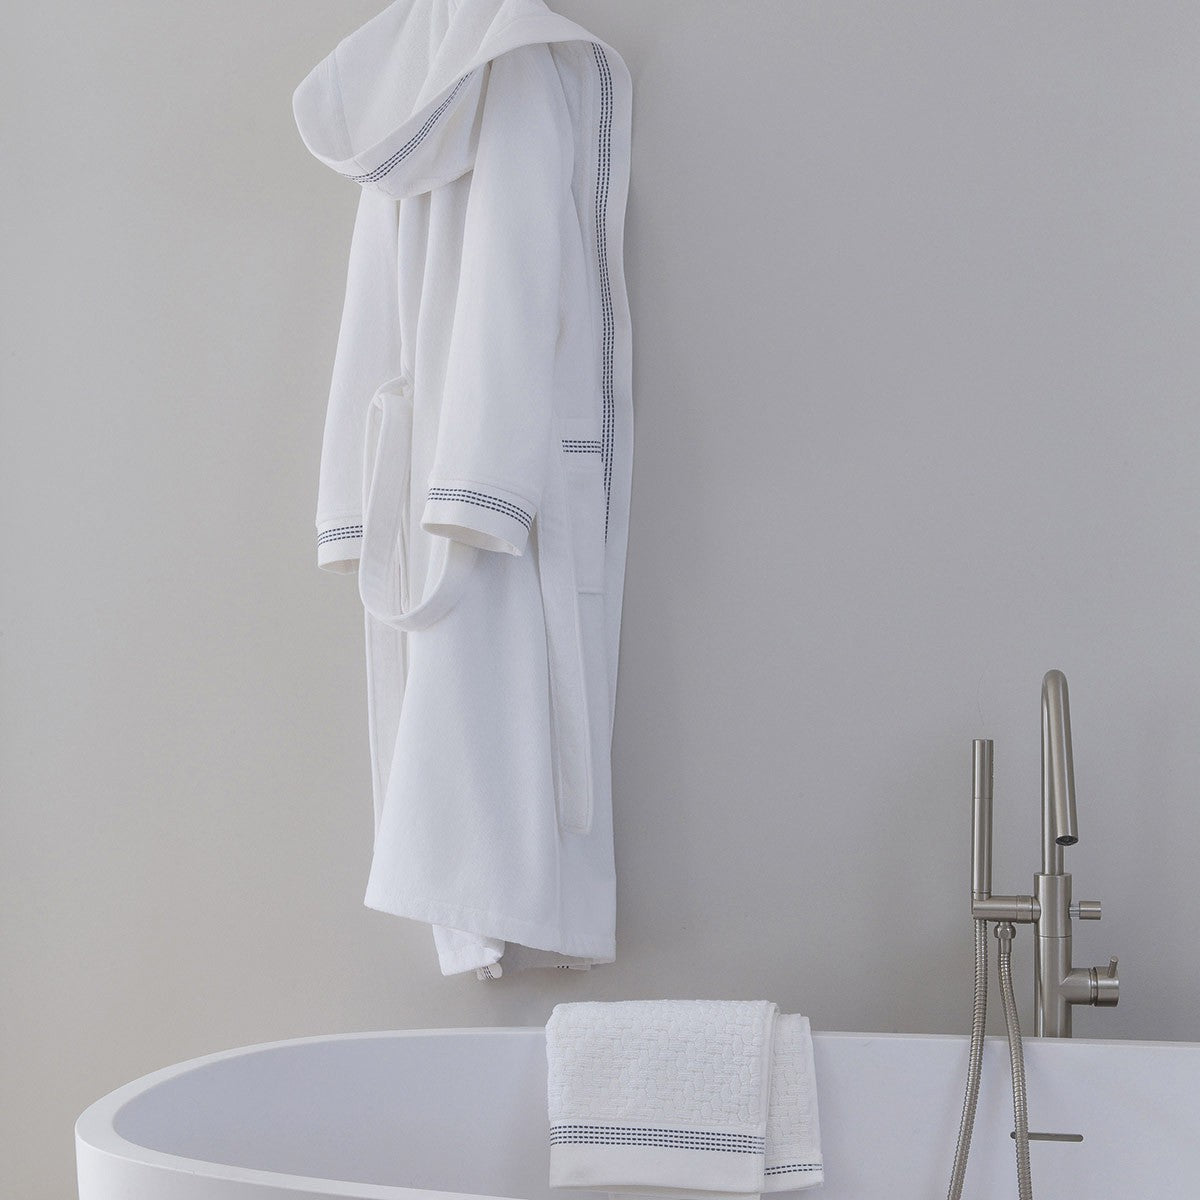 Le Jacquard Francais Couture Bath Linen Collection